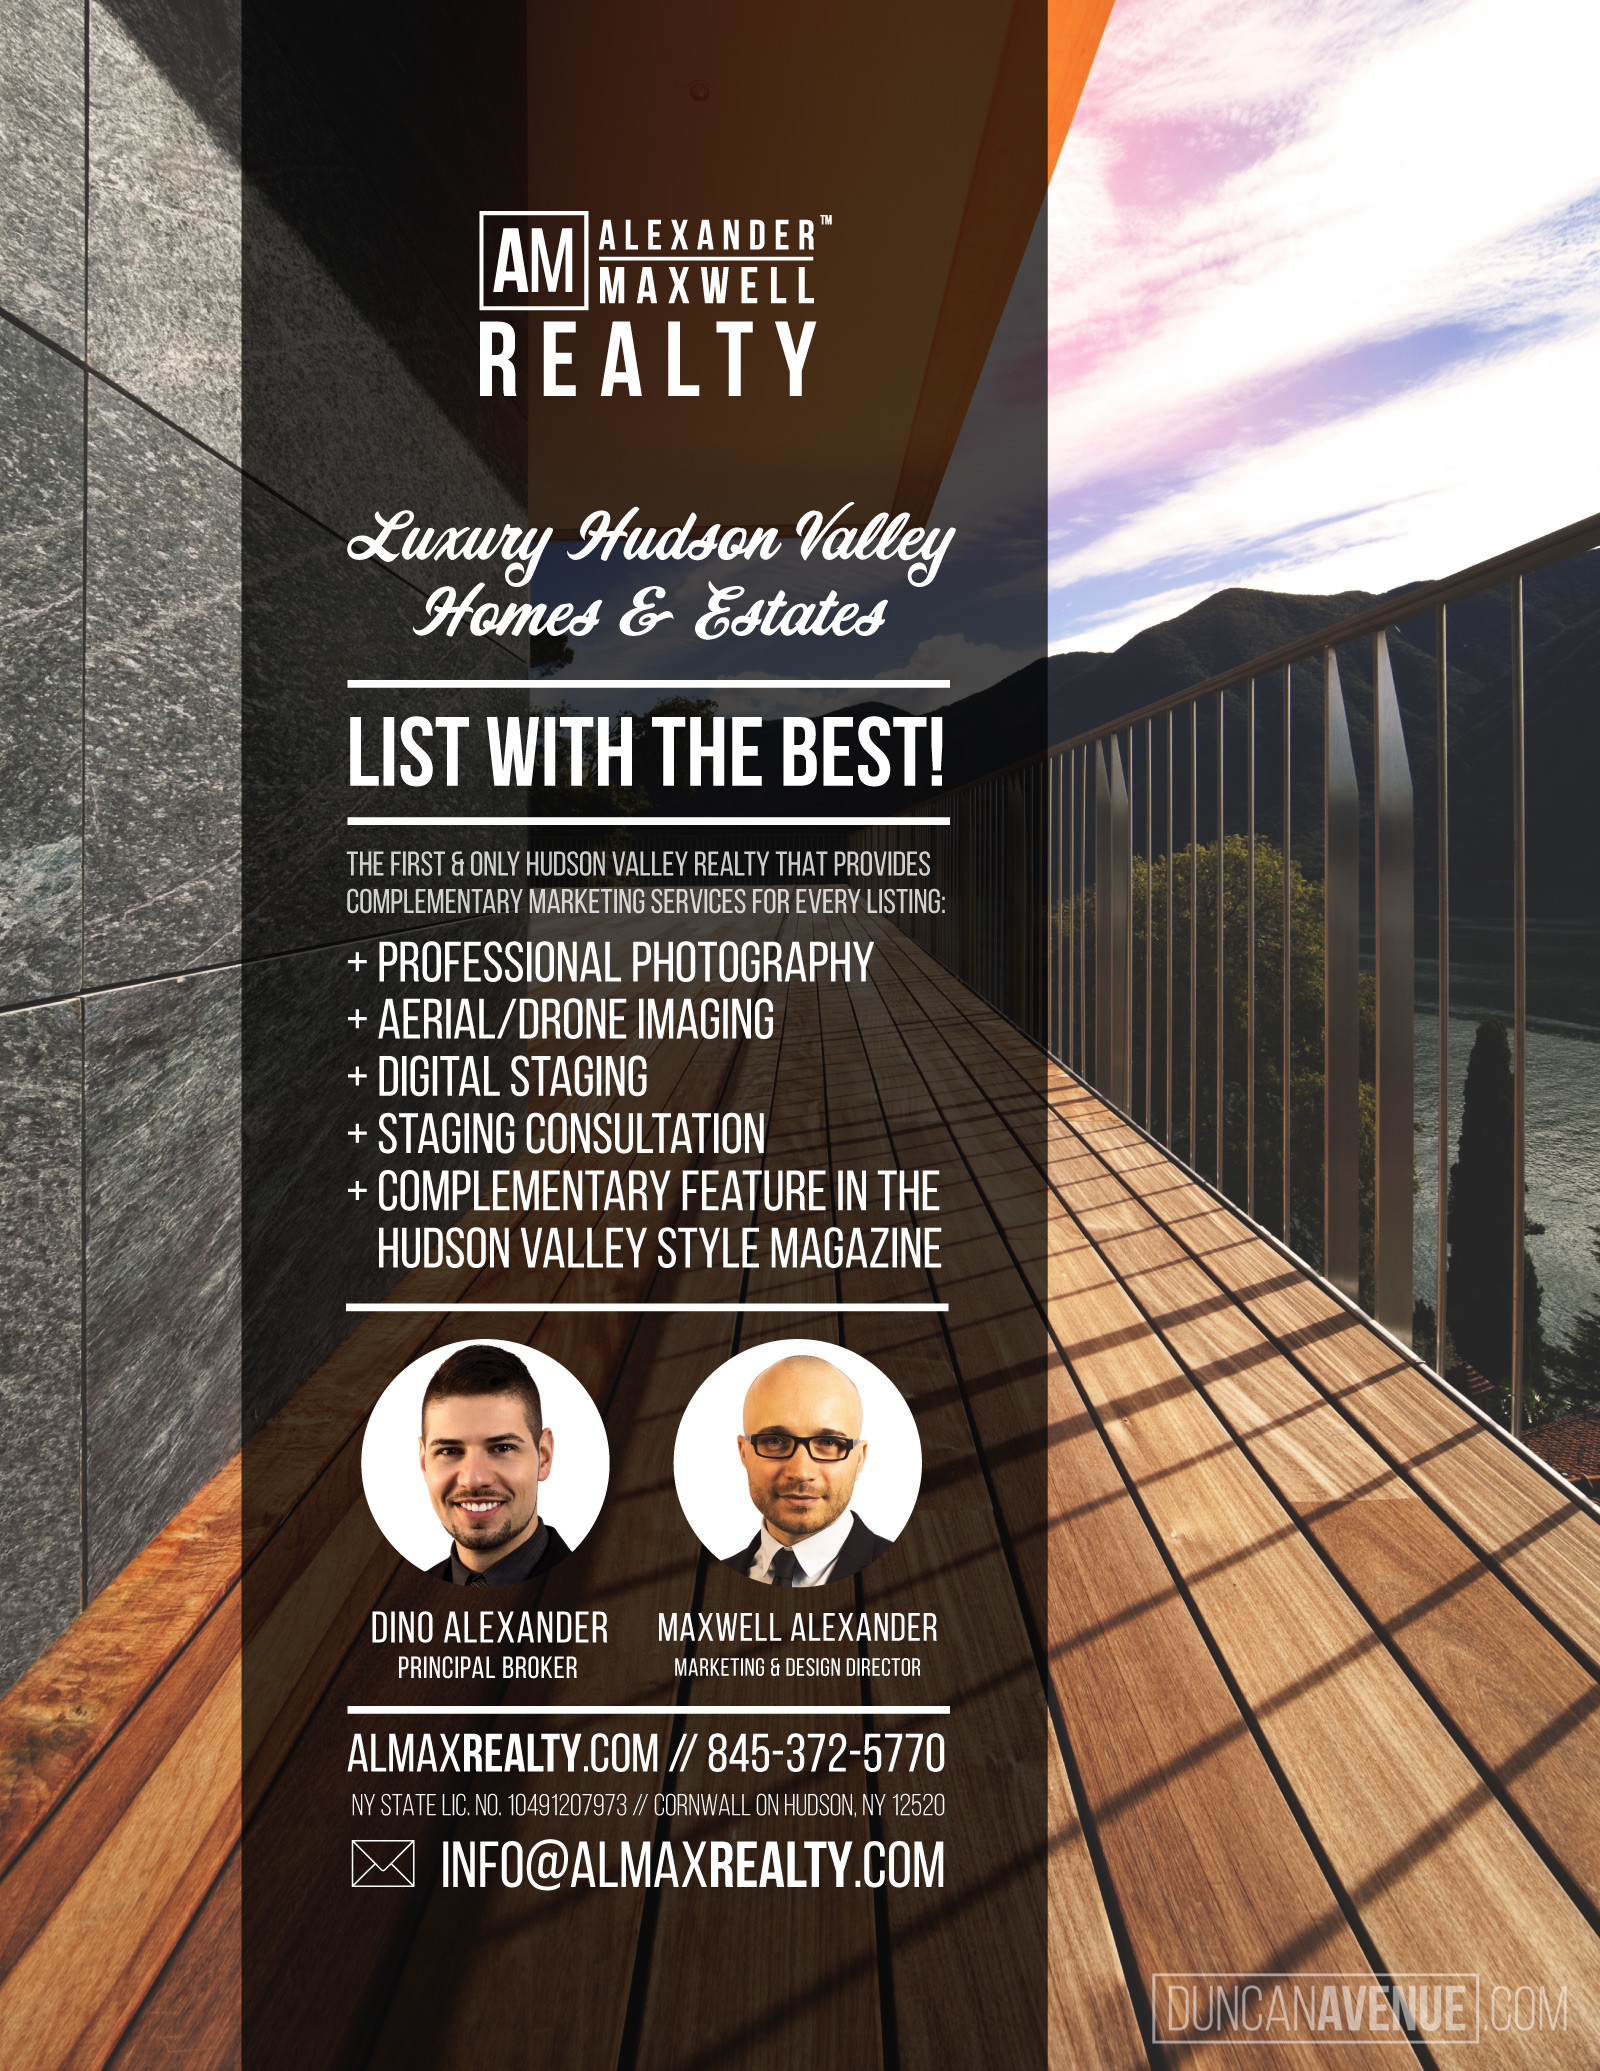 Alexander Maxwell Realty – Luxury Hudson Valley Homes & Estates